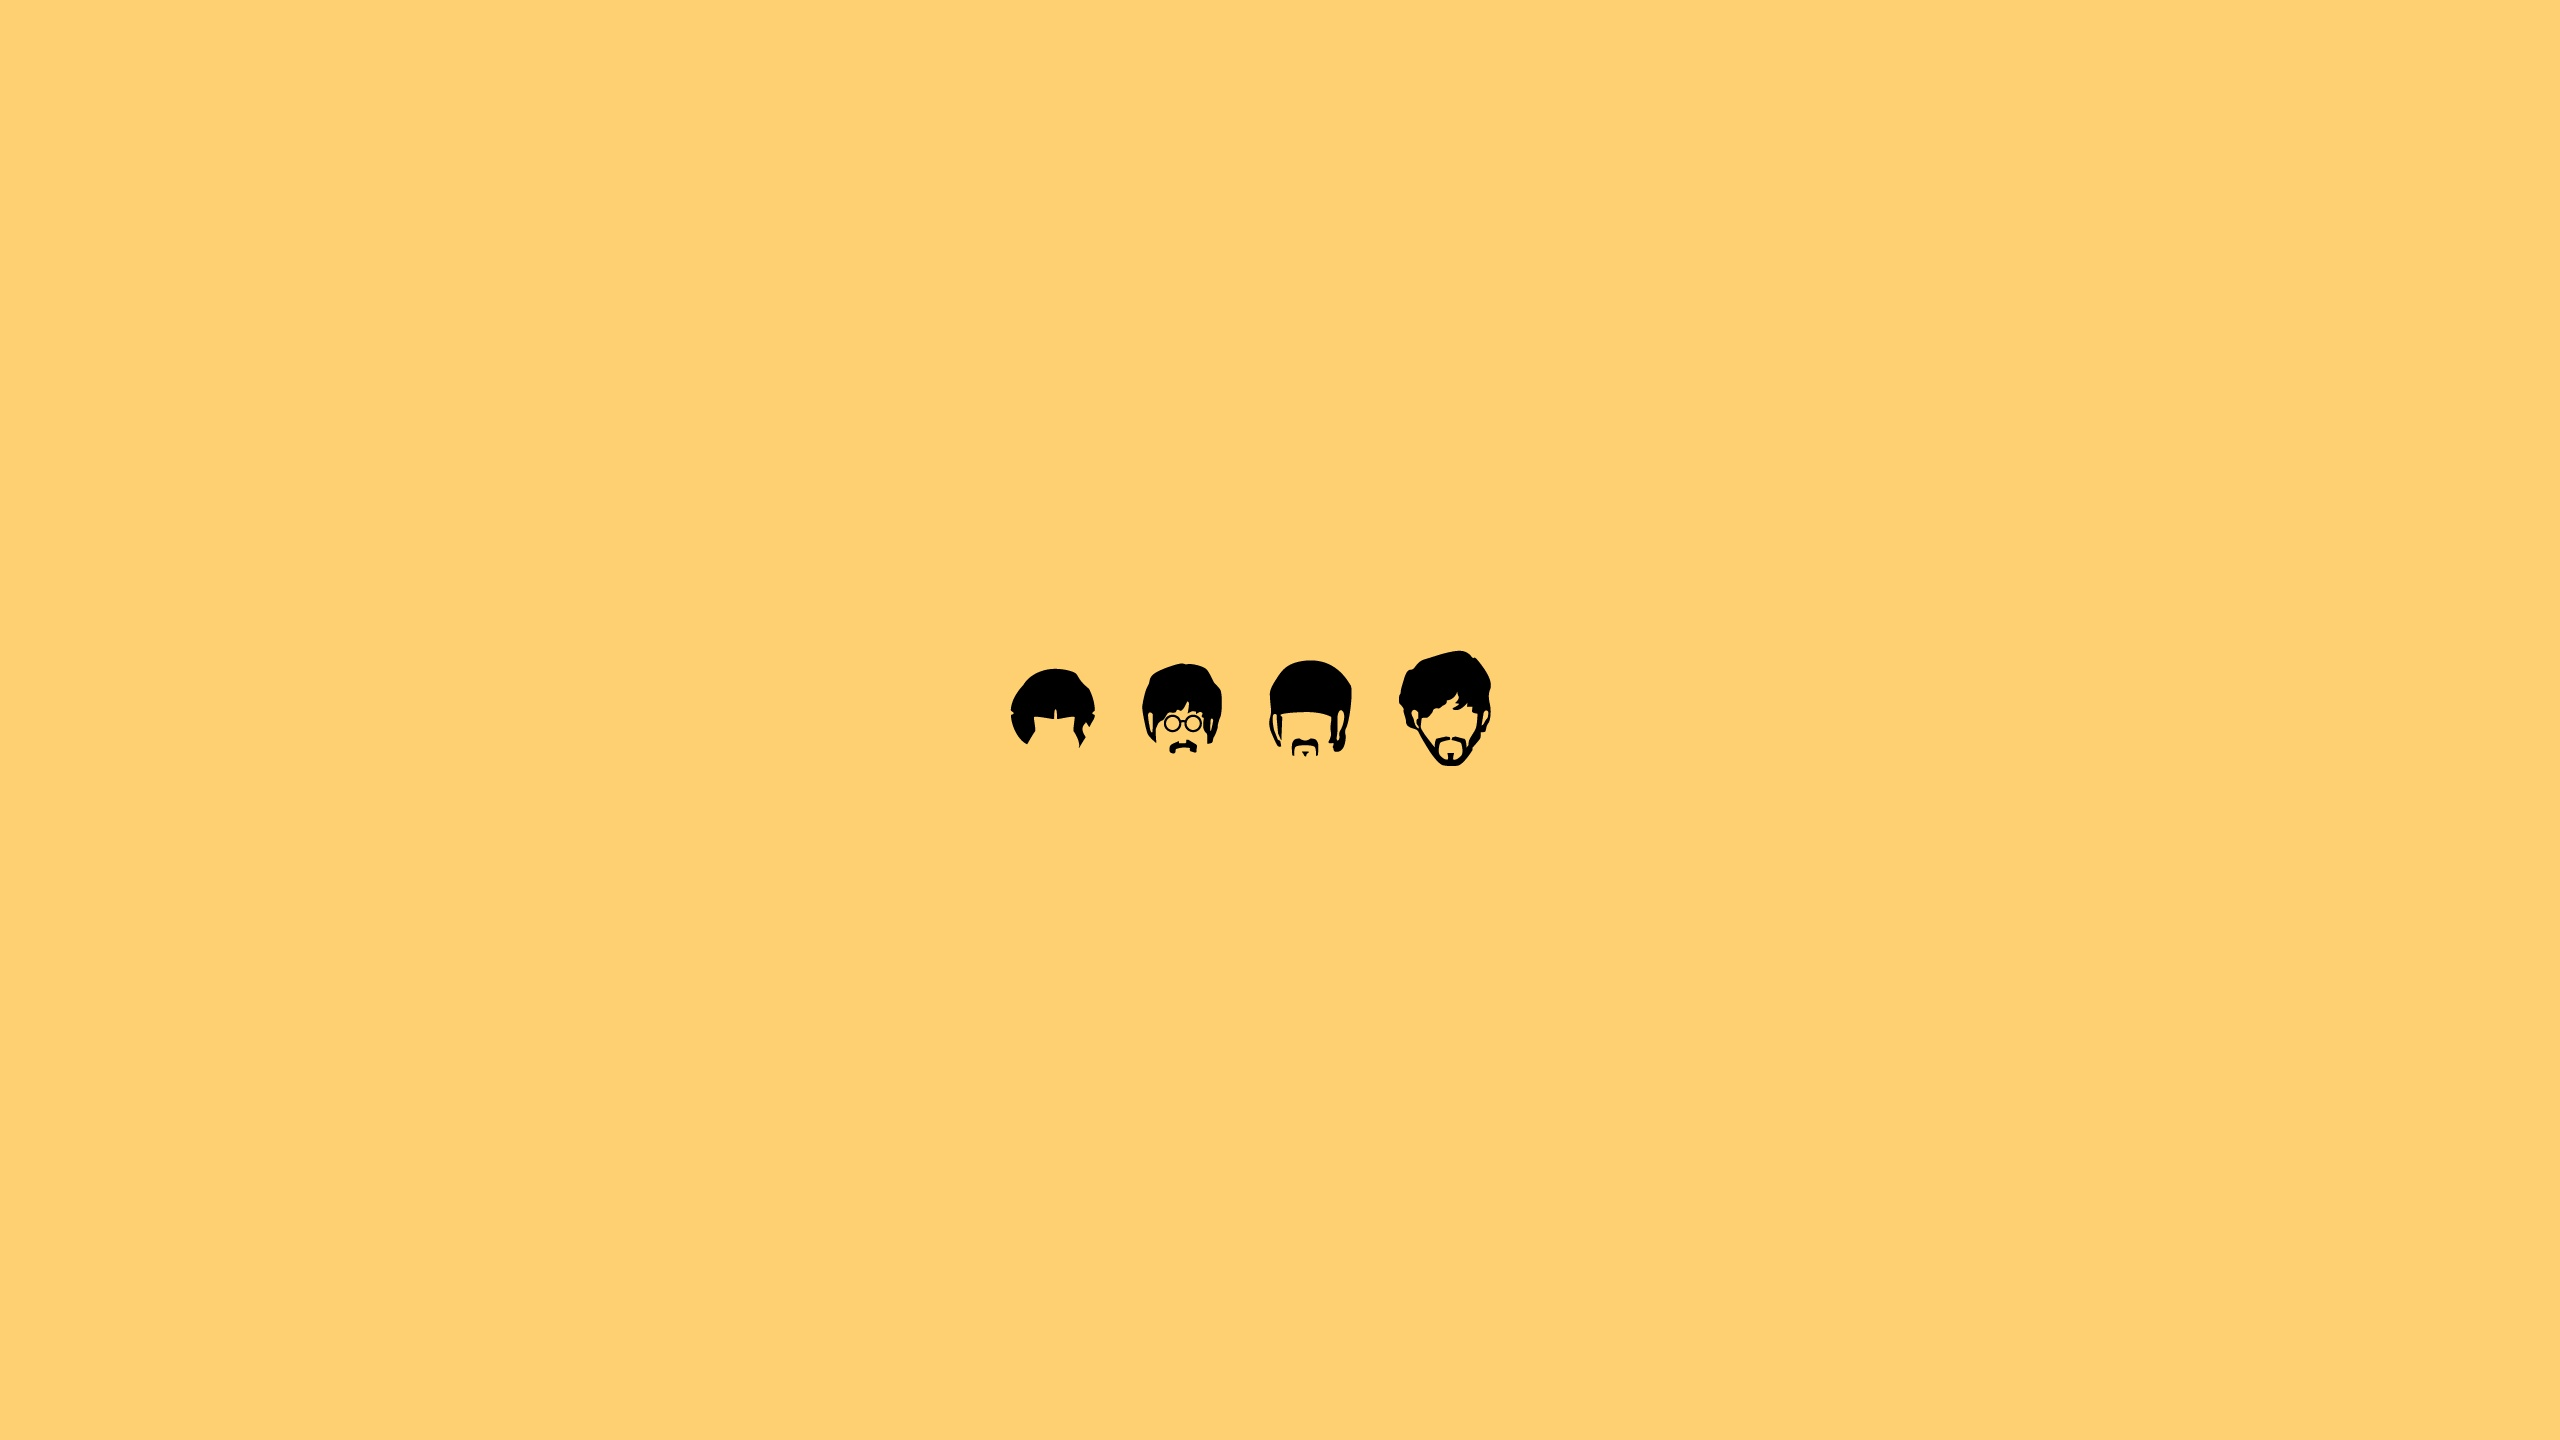 Wallpaper download cute - 2560x1440 The Beatles Minimalistic Illustration Desktop Pc